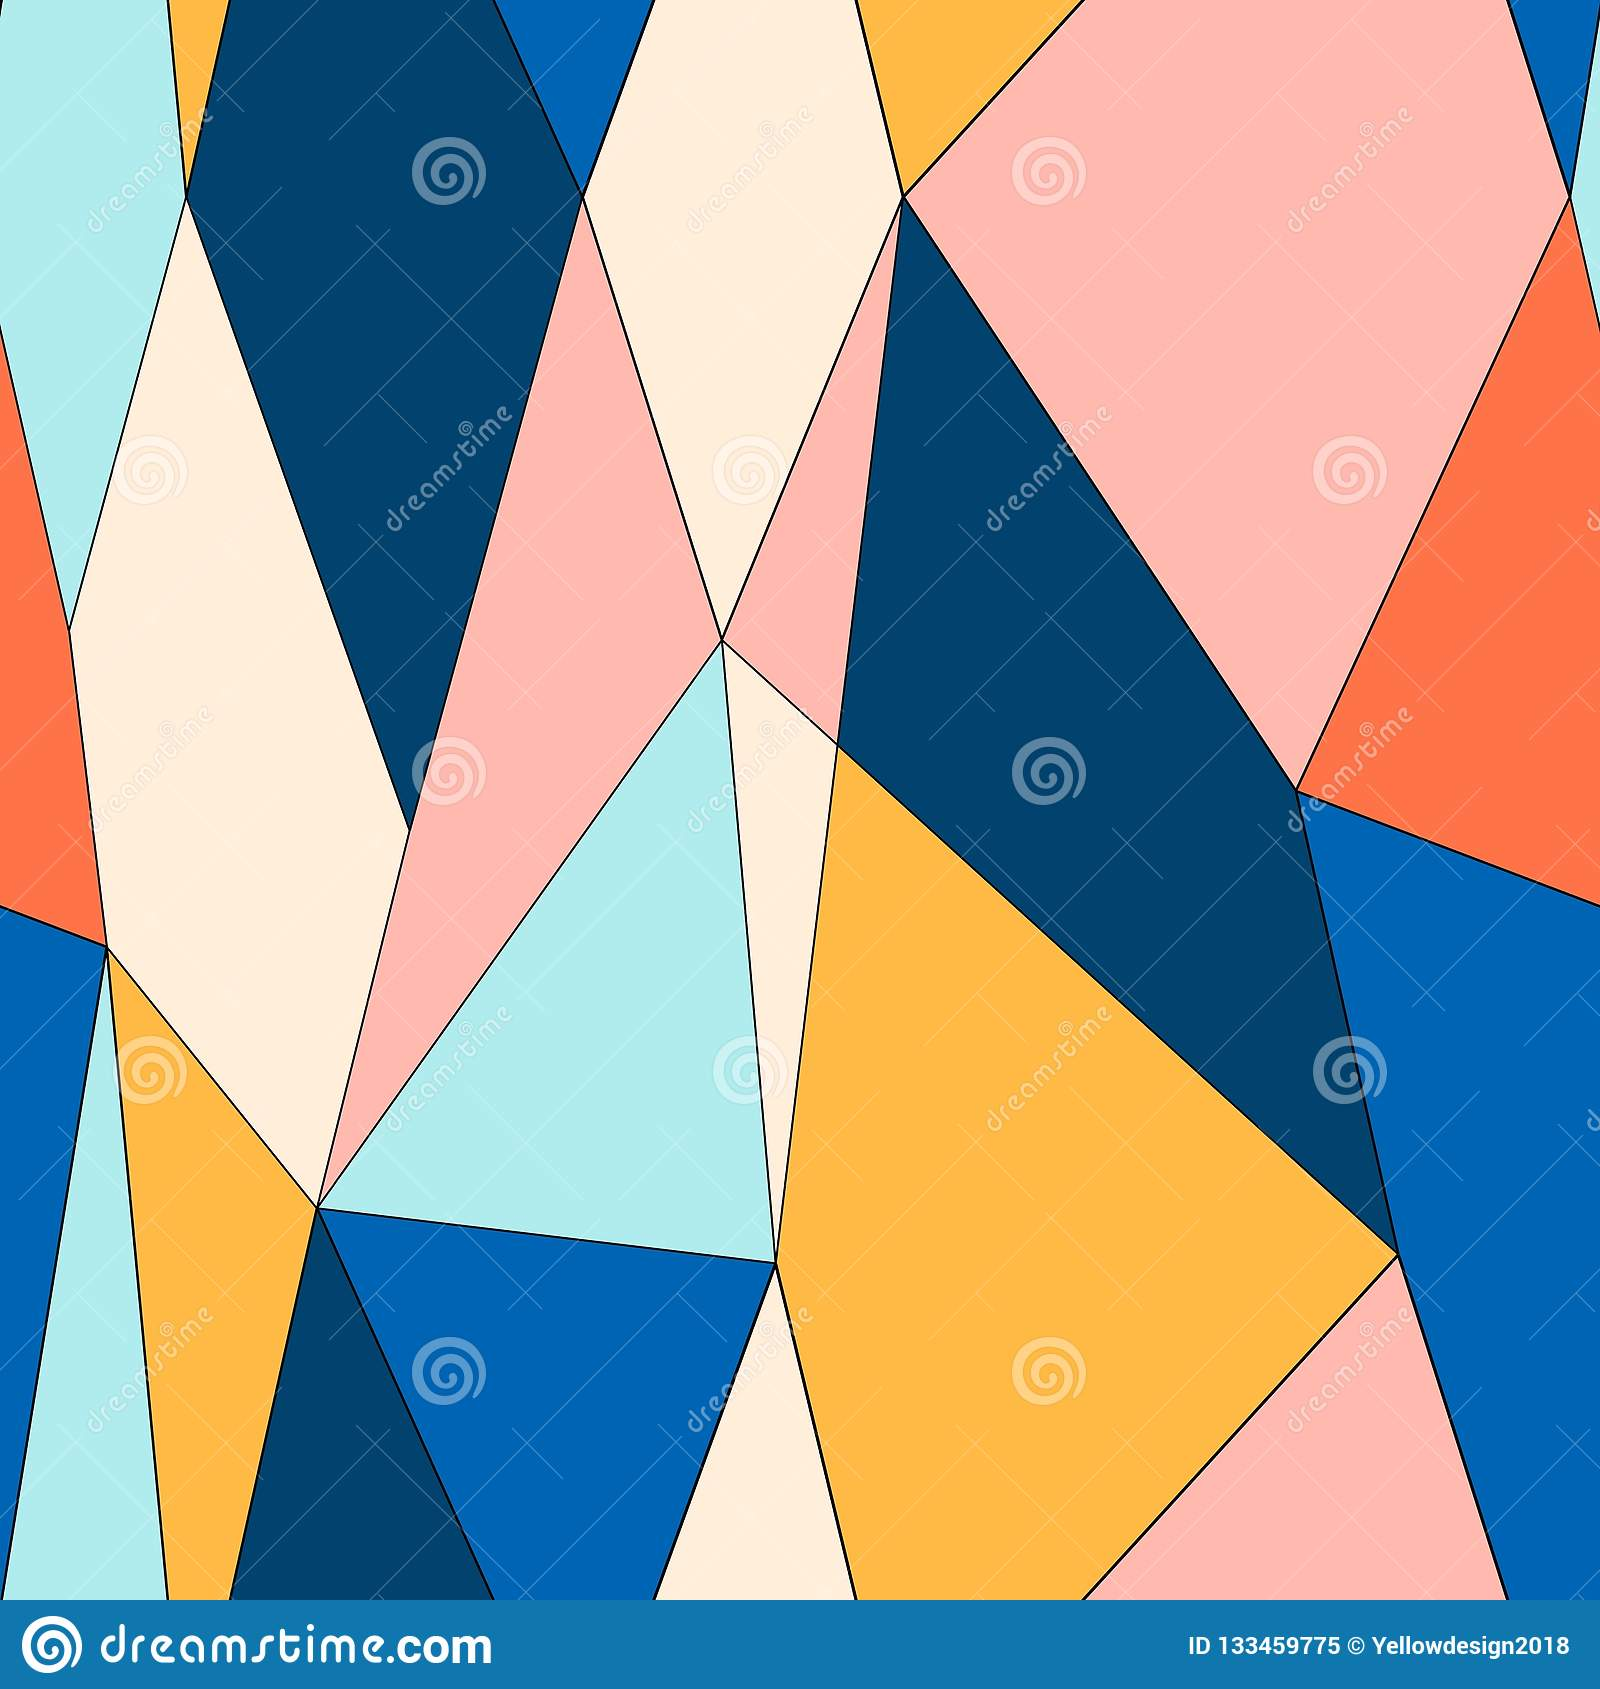 Abstract stained glass style seamless pattern. Polygonal low poly pattern